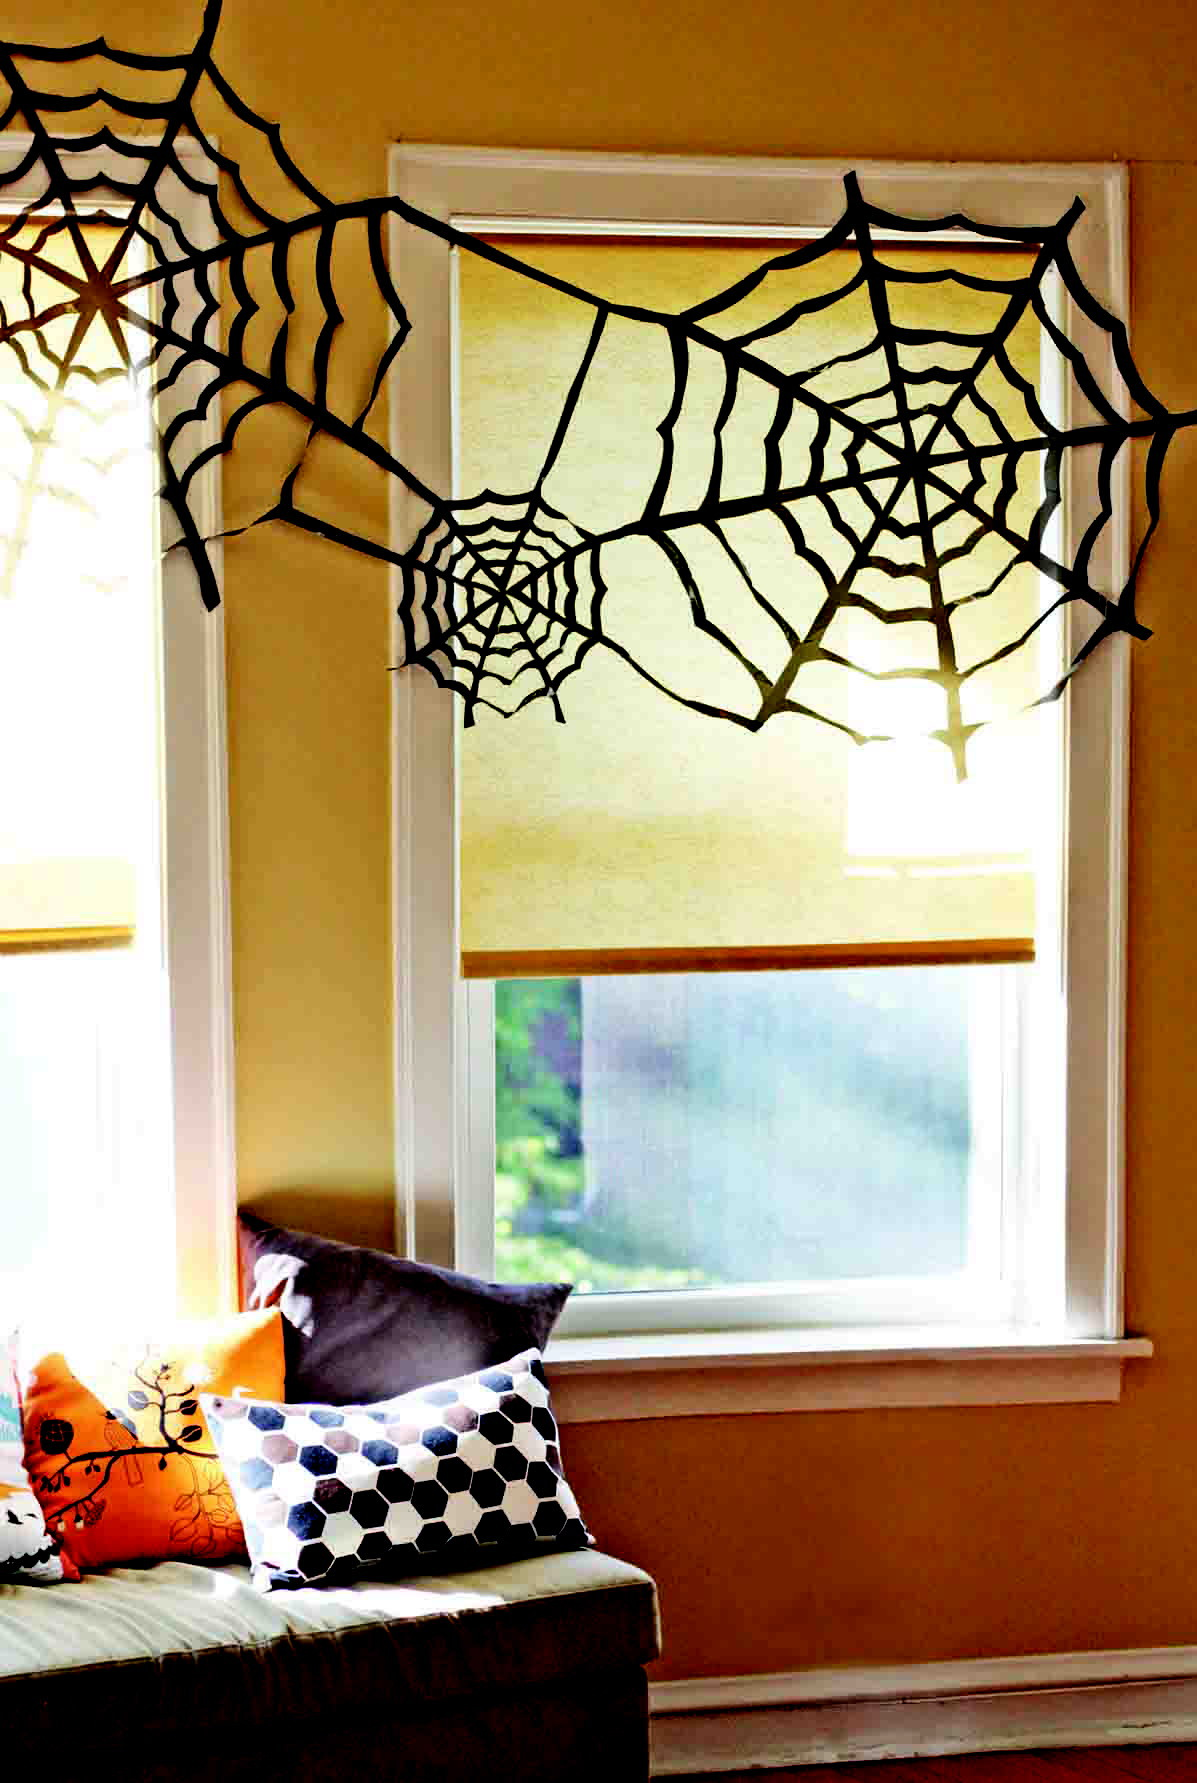 halloween26 - It's cheap and easy to turn a garbage bag into a spider web Halloween decoration. - Photo credit: Jessica Jones (can also be used on wire)